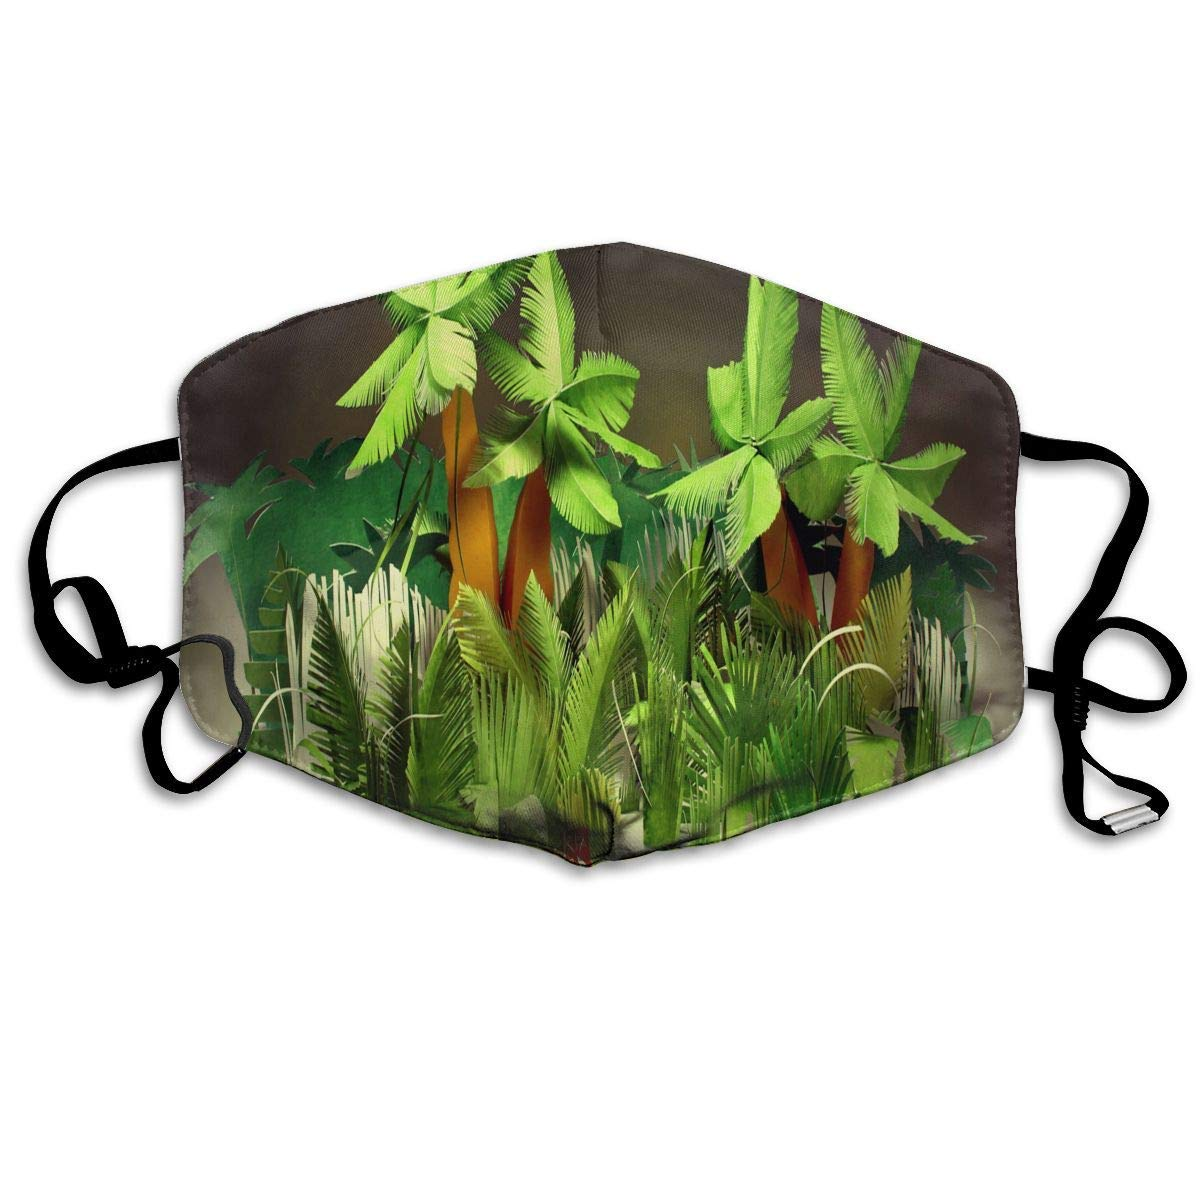 Large Palm Leaf Wallpaper,Surgical Mask Winter Healthy Washable for Unisex Christmas Mouth Masks by Liayai7.